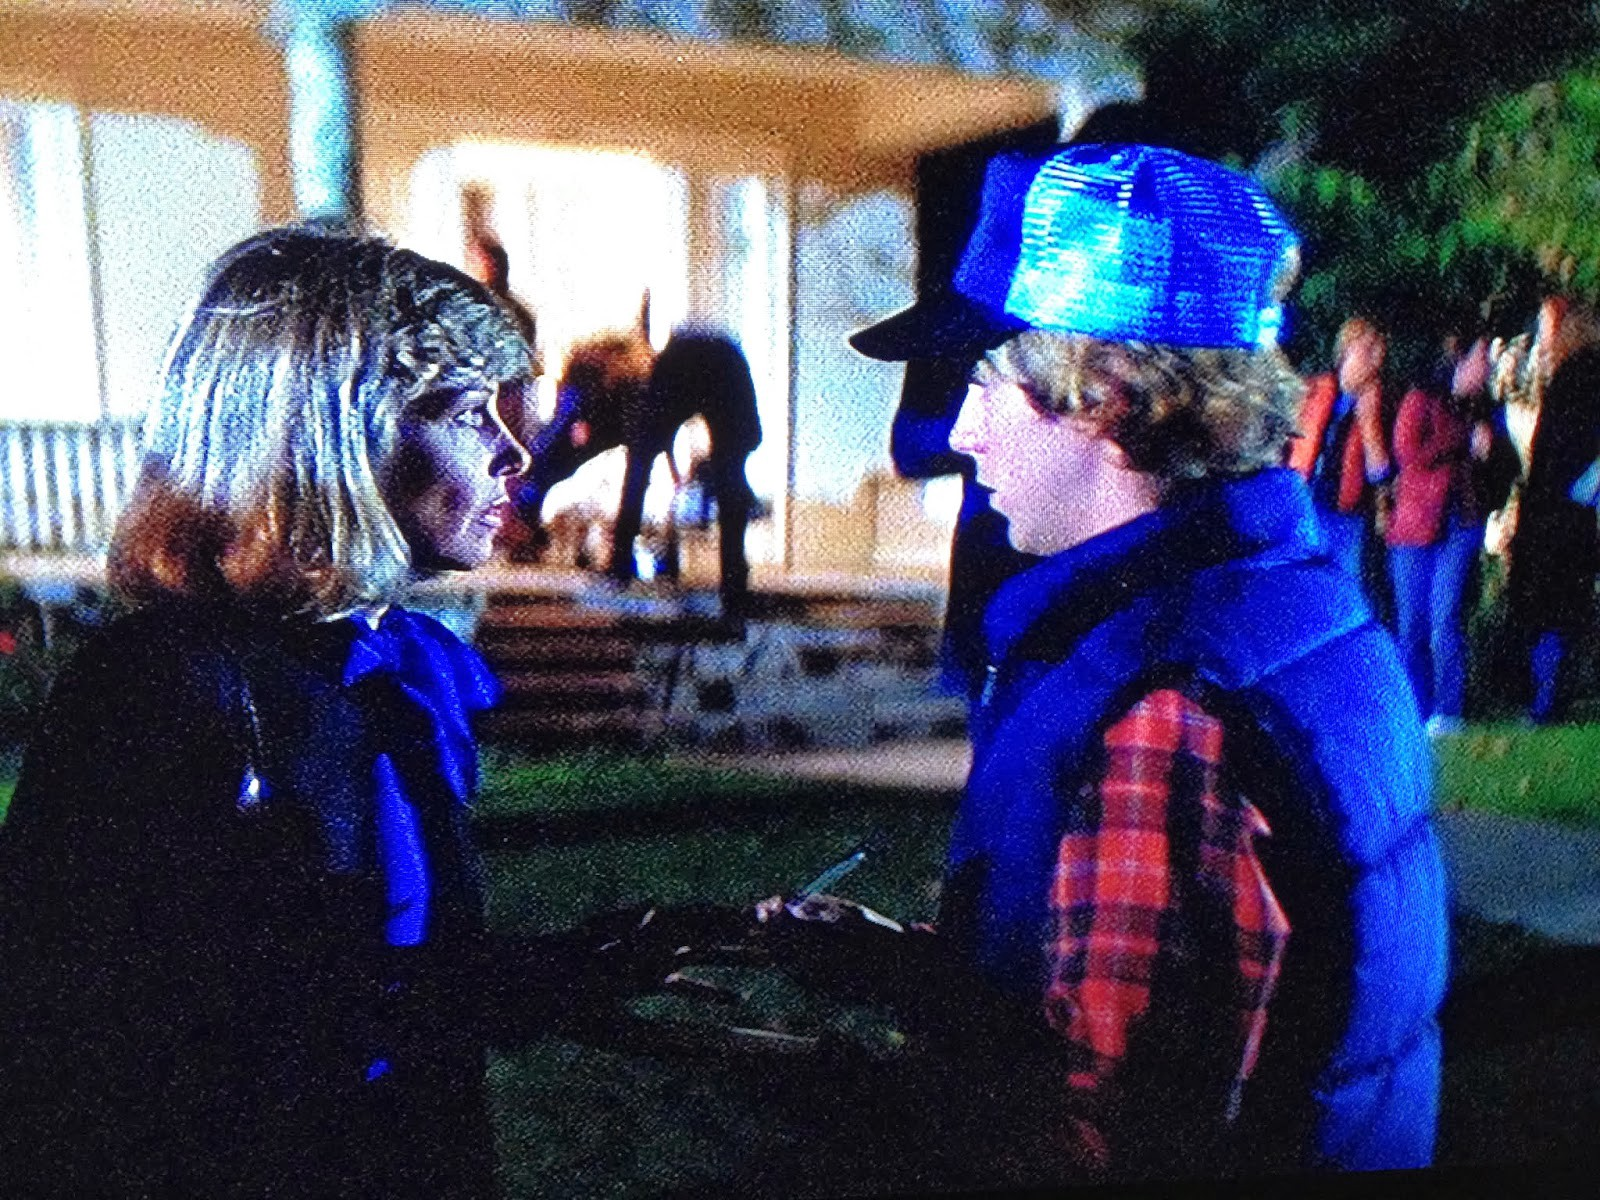 comparing the halloween, friday the 13th, and a nightmare on elm